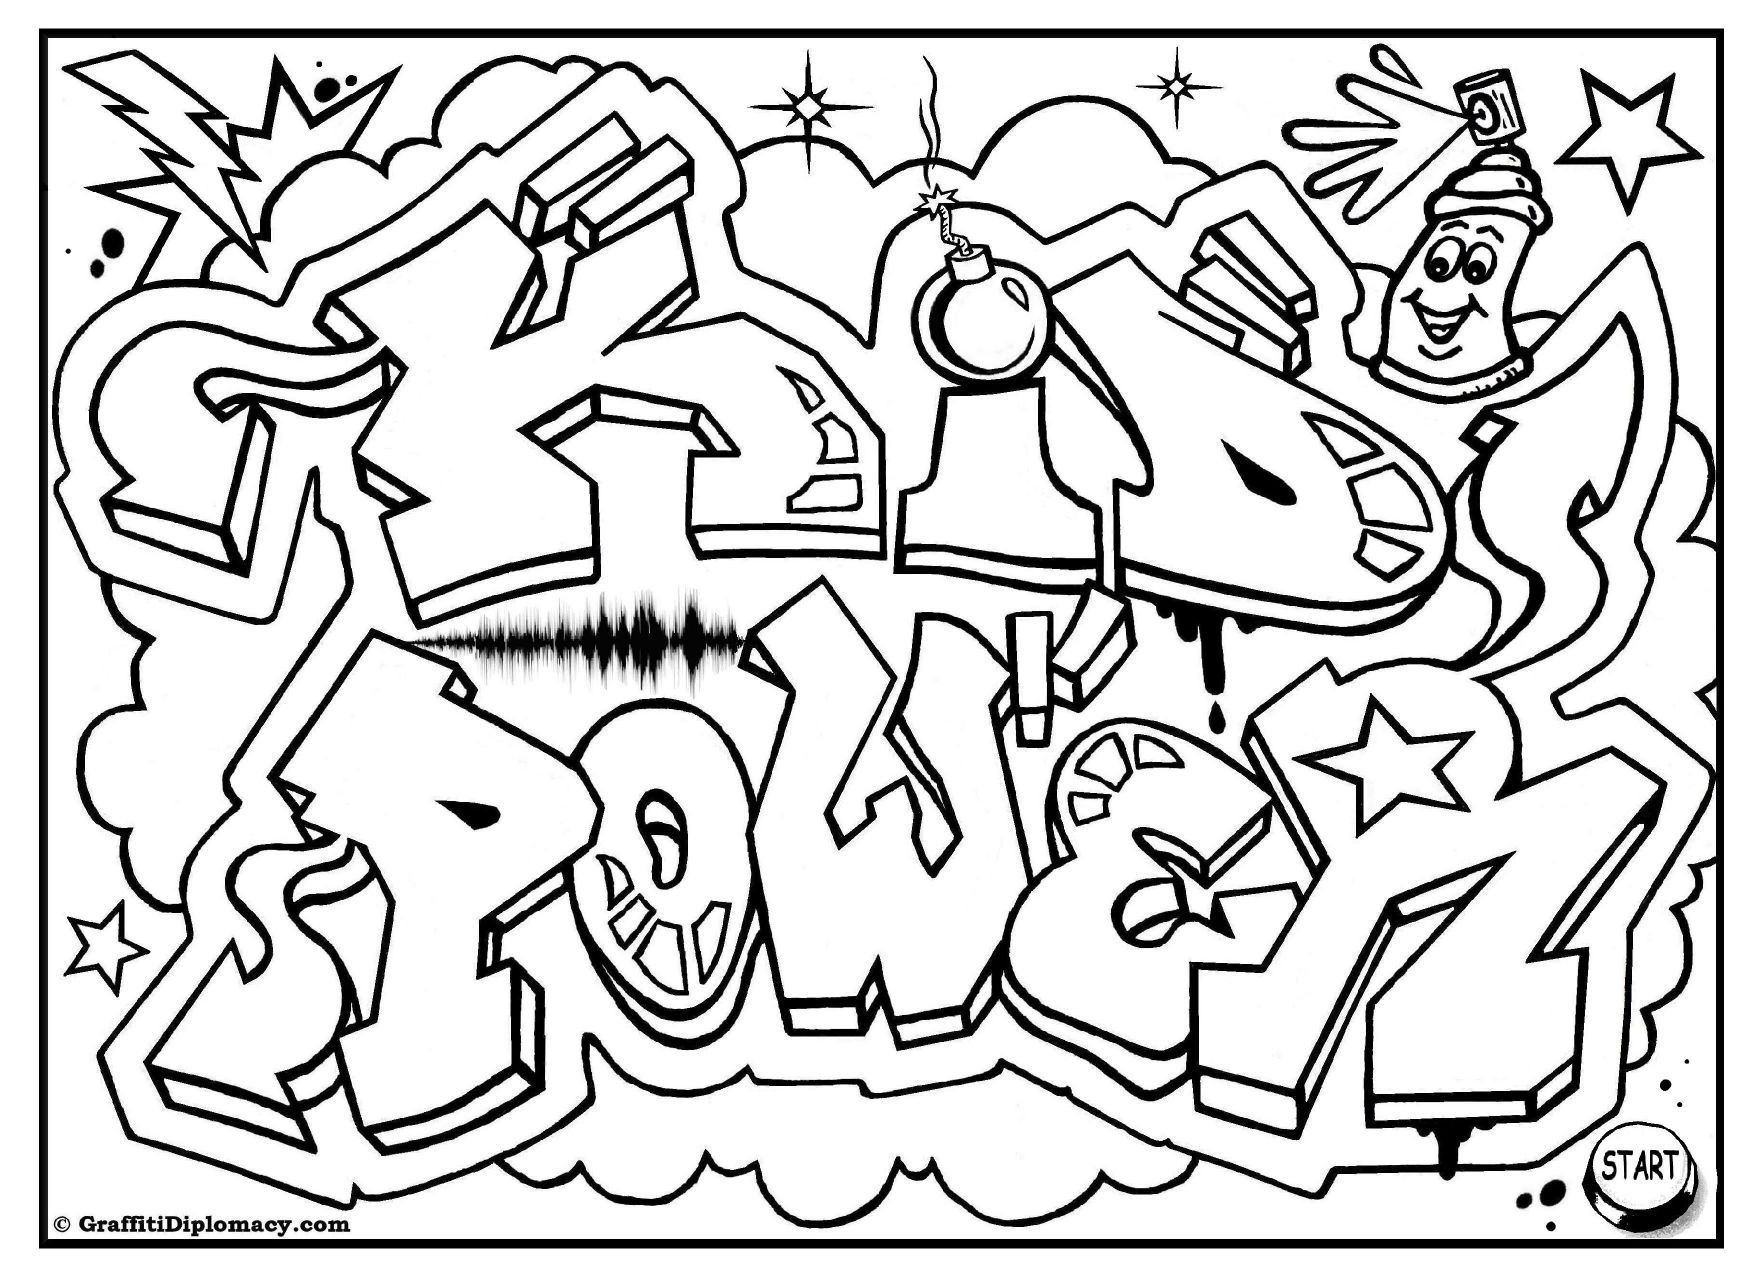 1754x1276 Drawing And Colouring Pictures New The Best Skull Graffiti